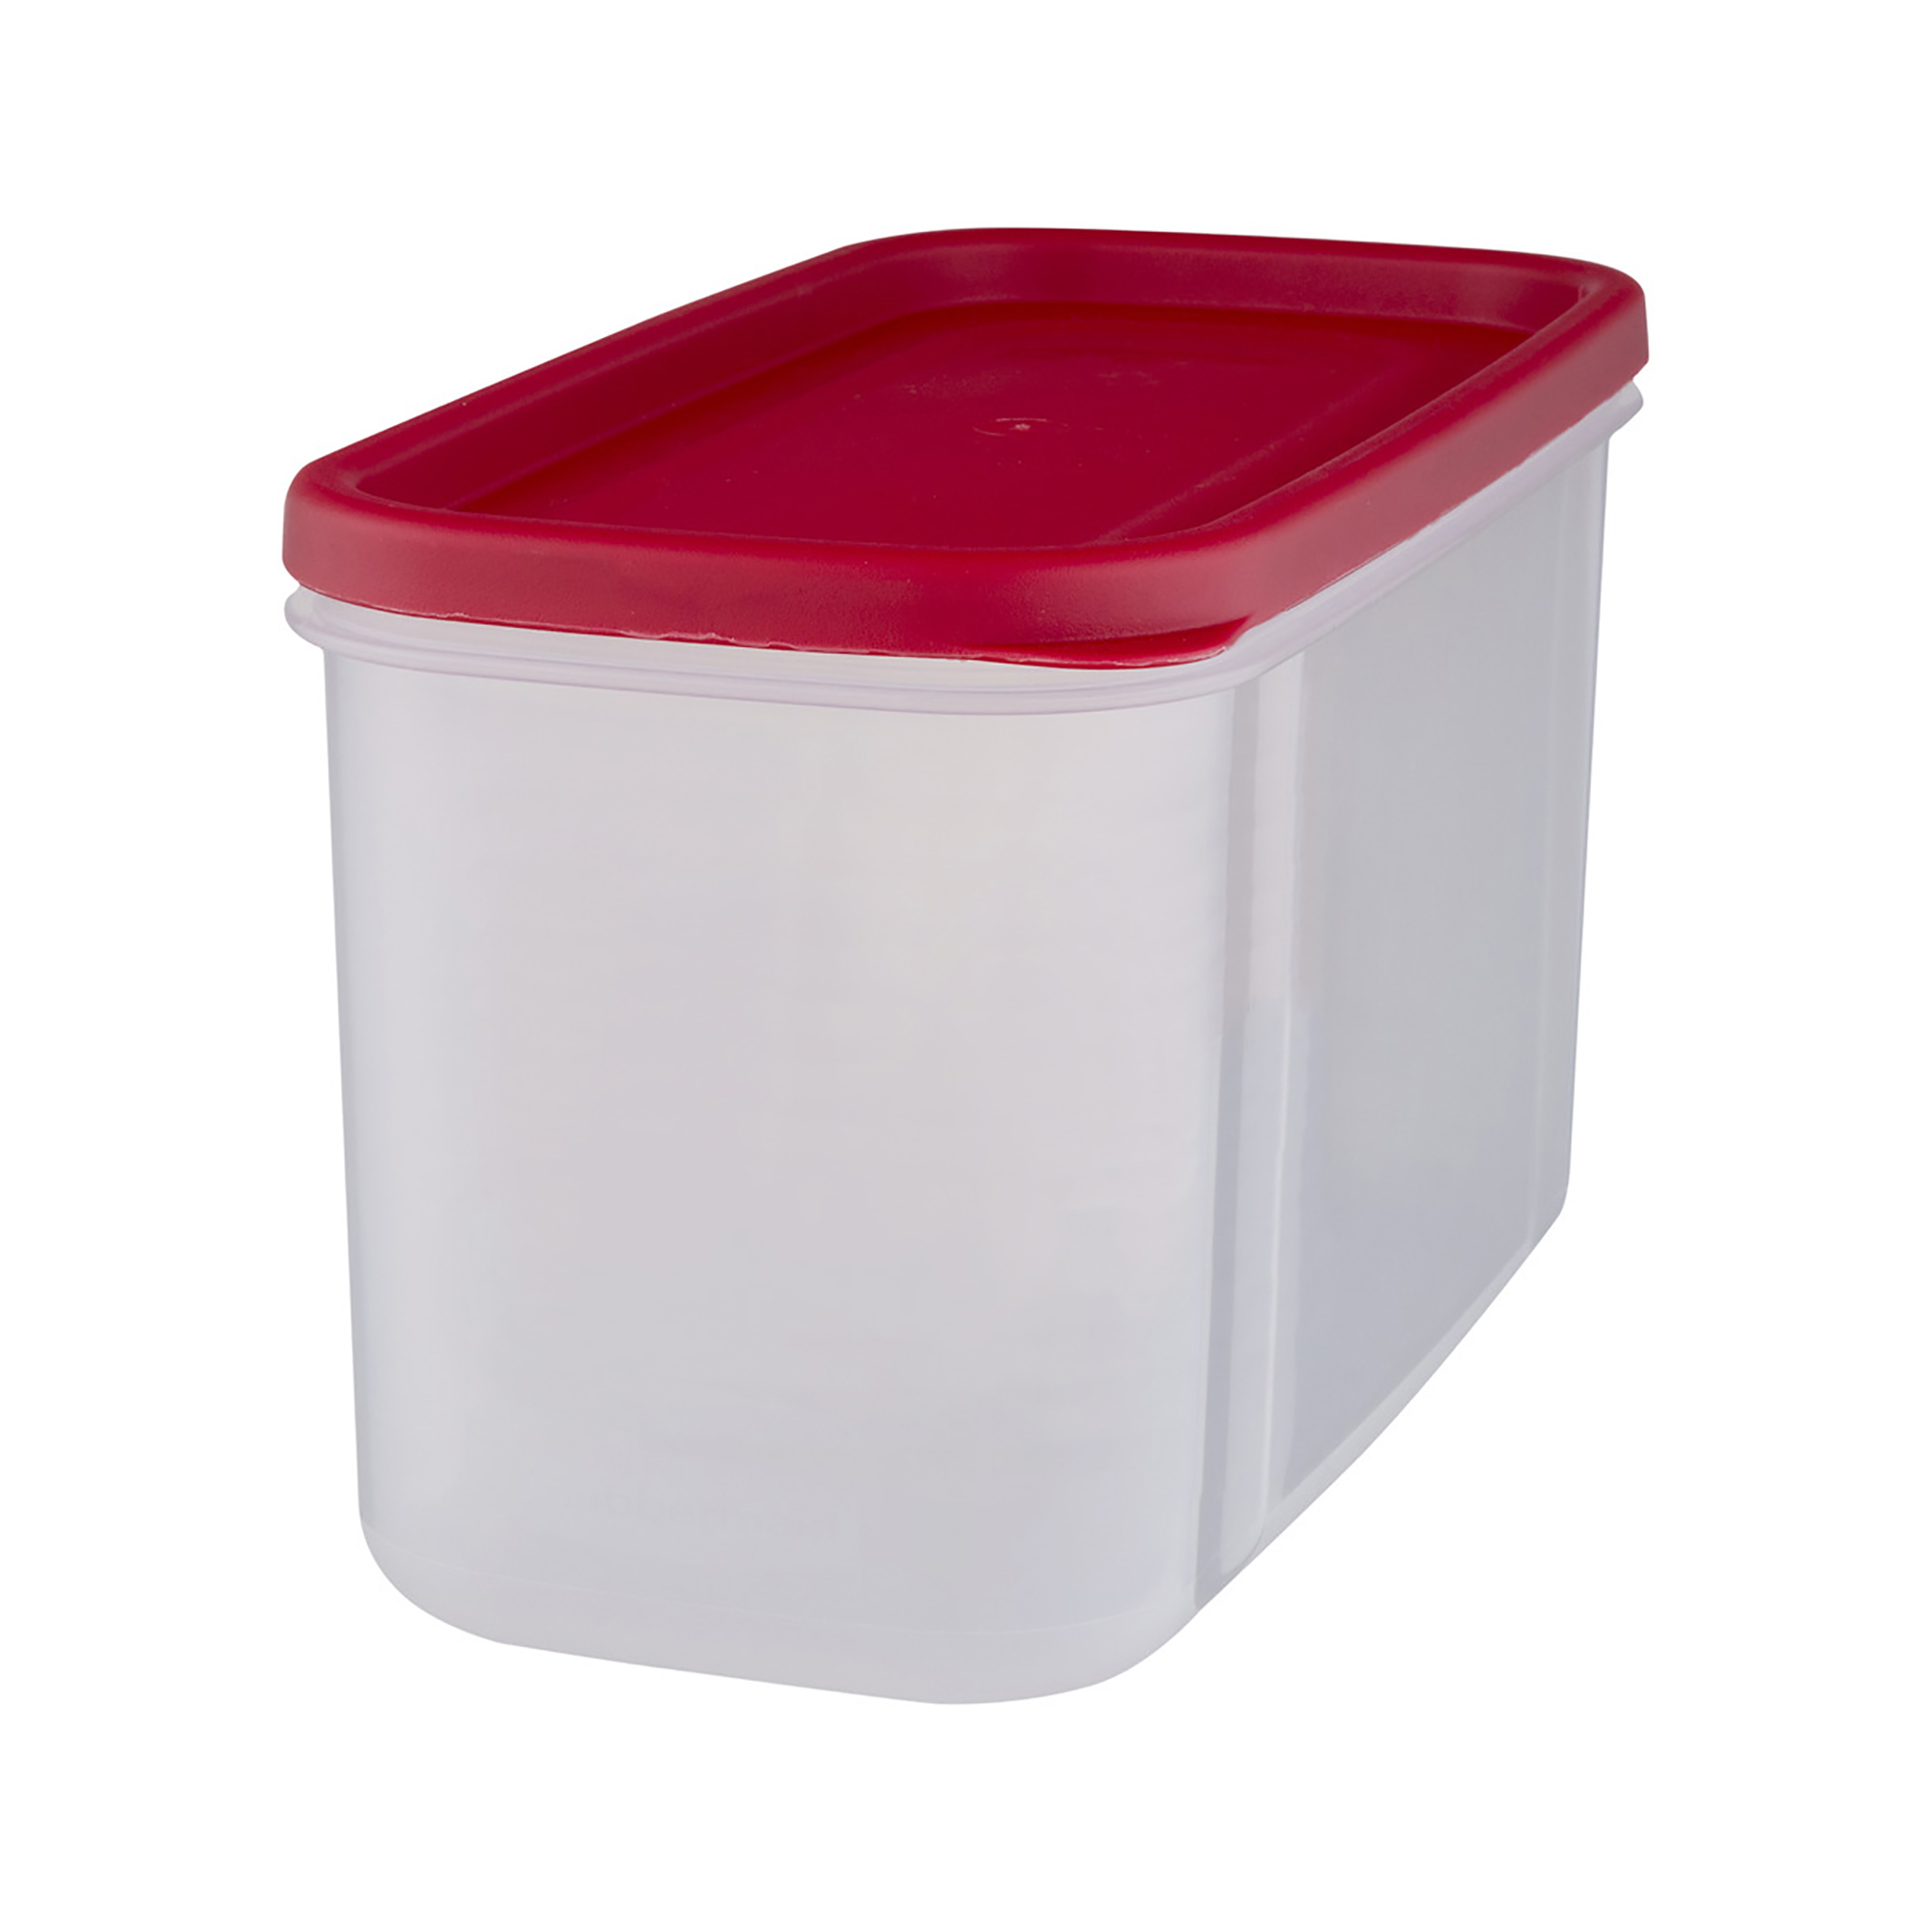 Rubbermaid Modular Plastic Canister Food Storage Container with Lid